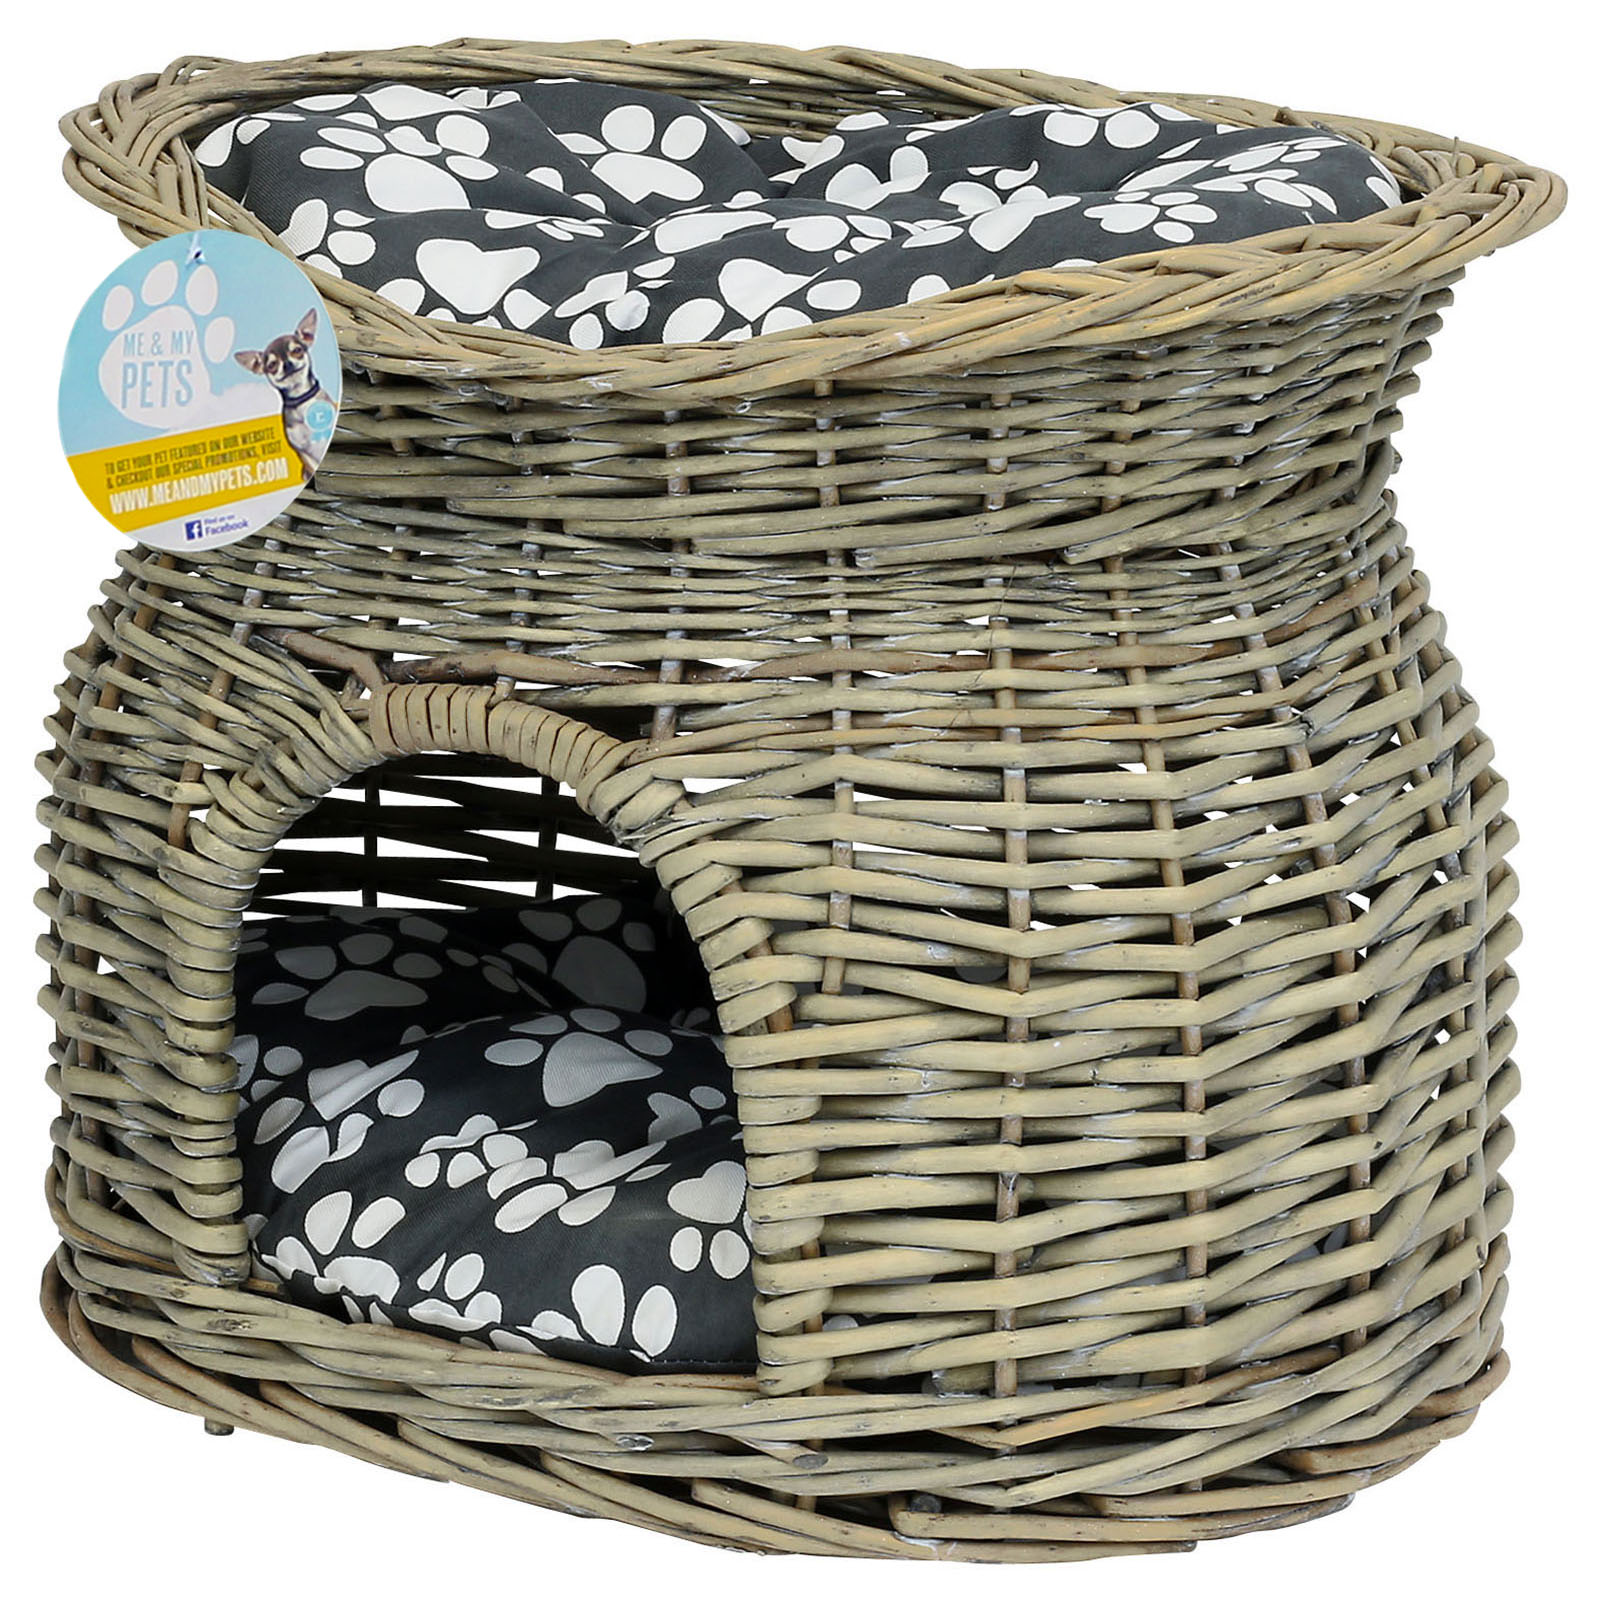 Me Amp My 2 Tier Wicker Pet Bed Basket Igloo House Raised Cushion Small Cat Kitten